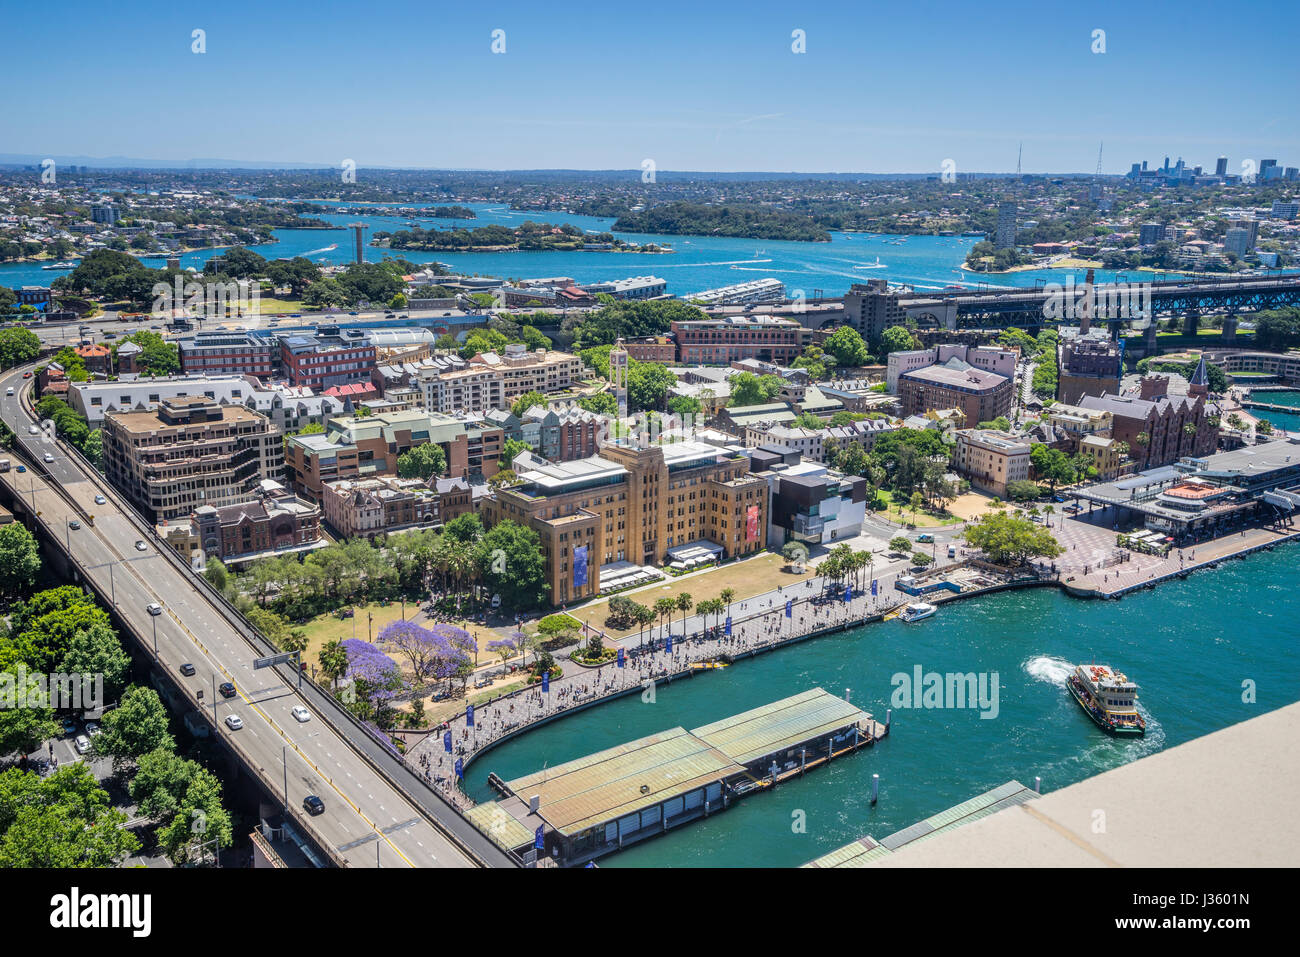 Australia, New South Wales, Sydney, aerial view of the Rocks with Circular Quay, the Museum of Contempory Art and - Stock Image